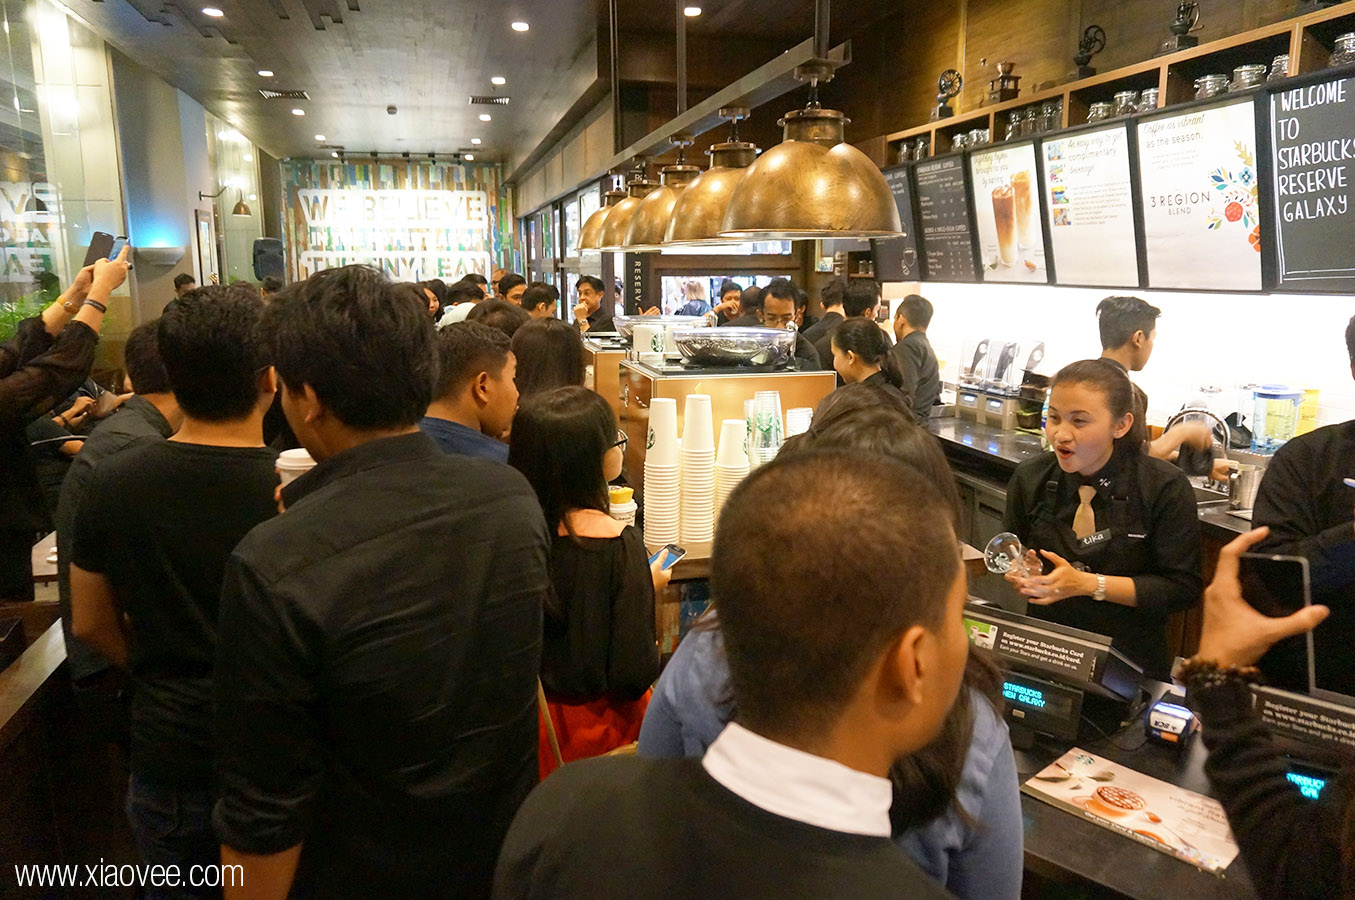 Starbucks Reserve in Surabaya, Starbucks Reserve Galaxy Mall, Starbucks Reserve GM